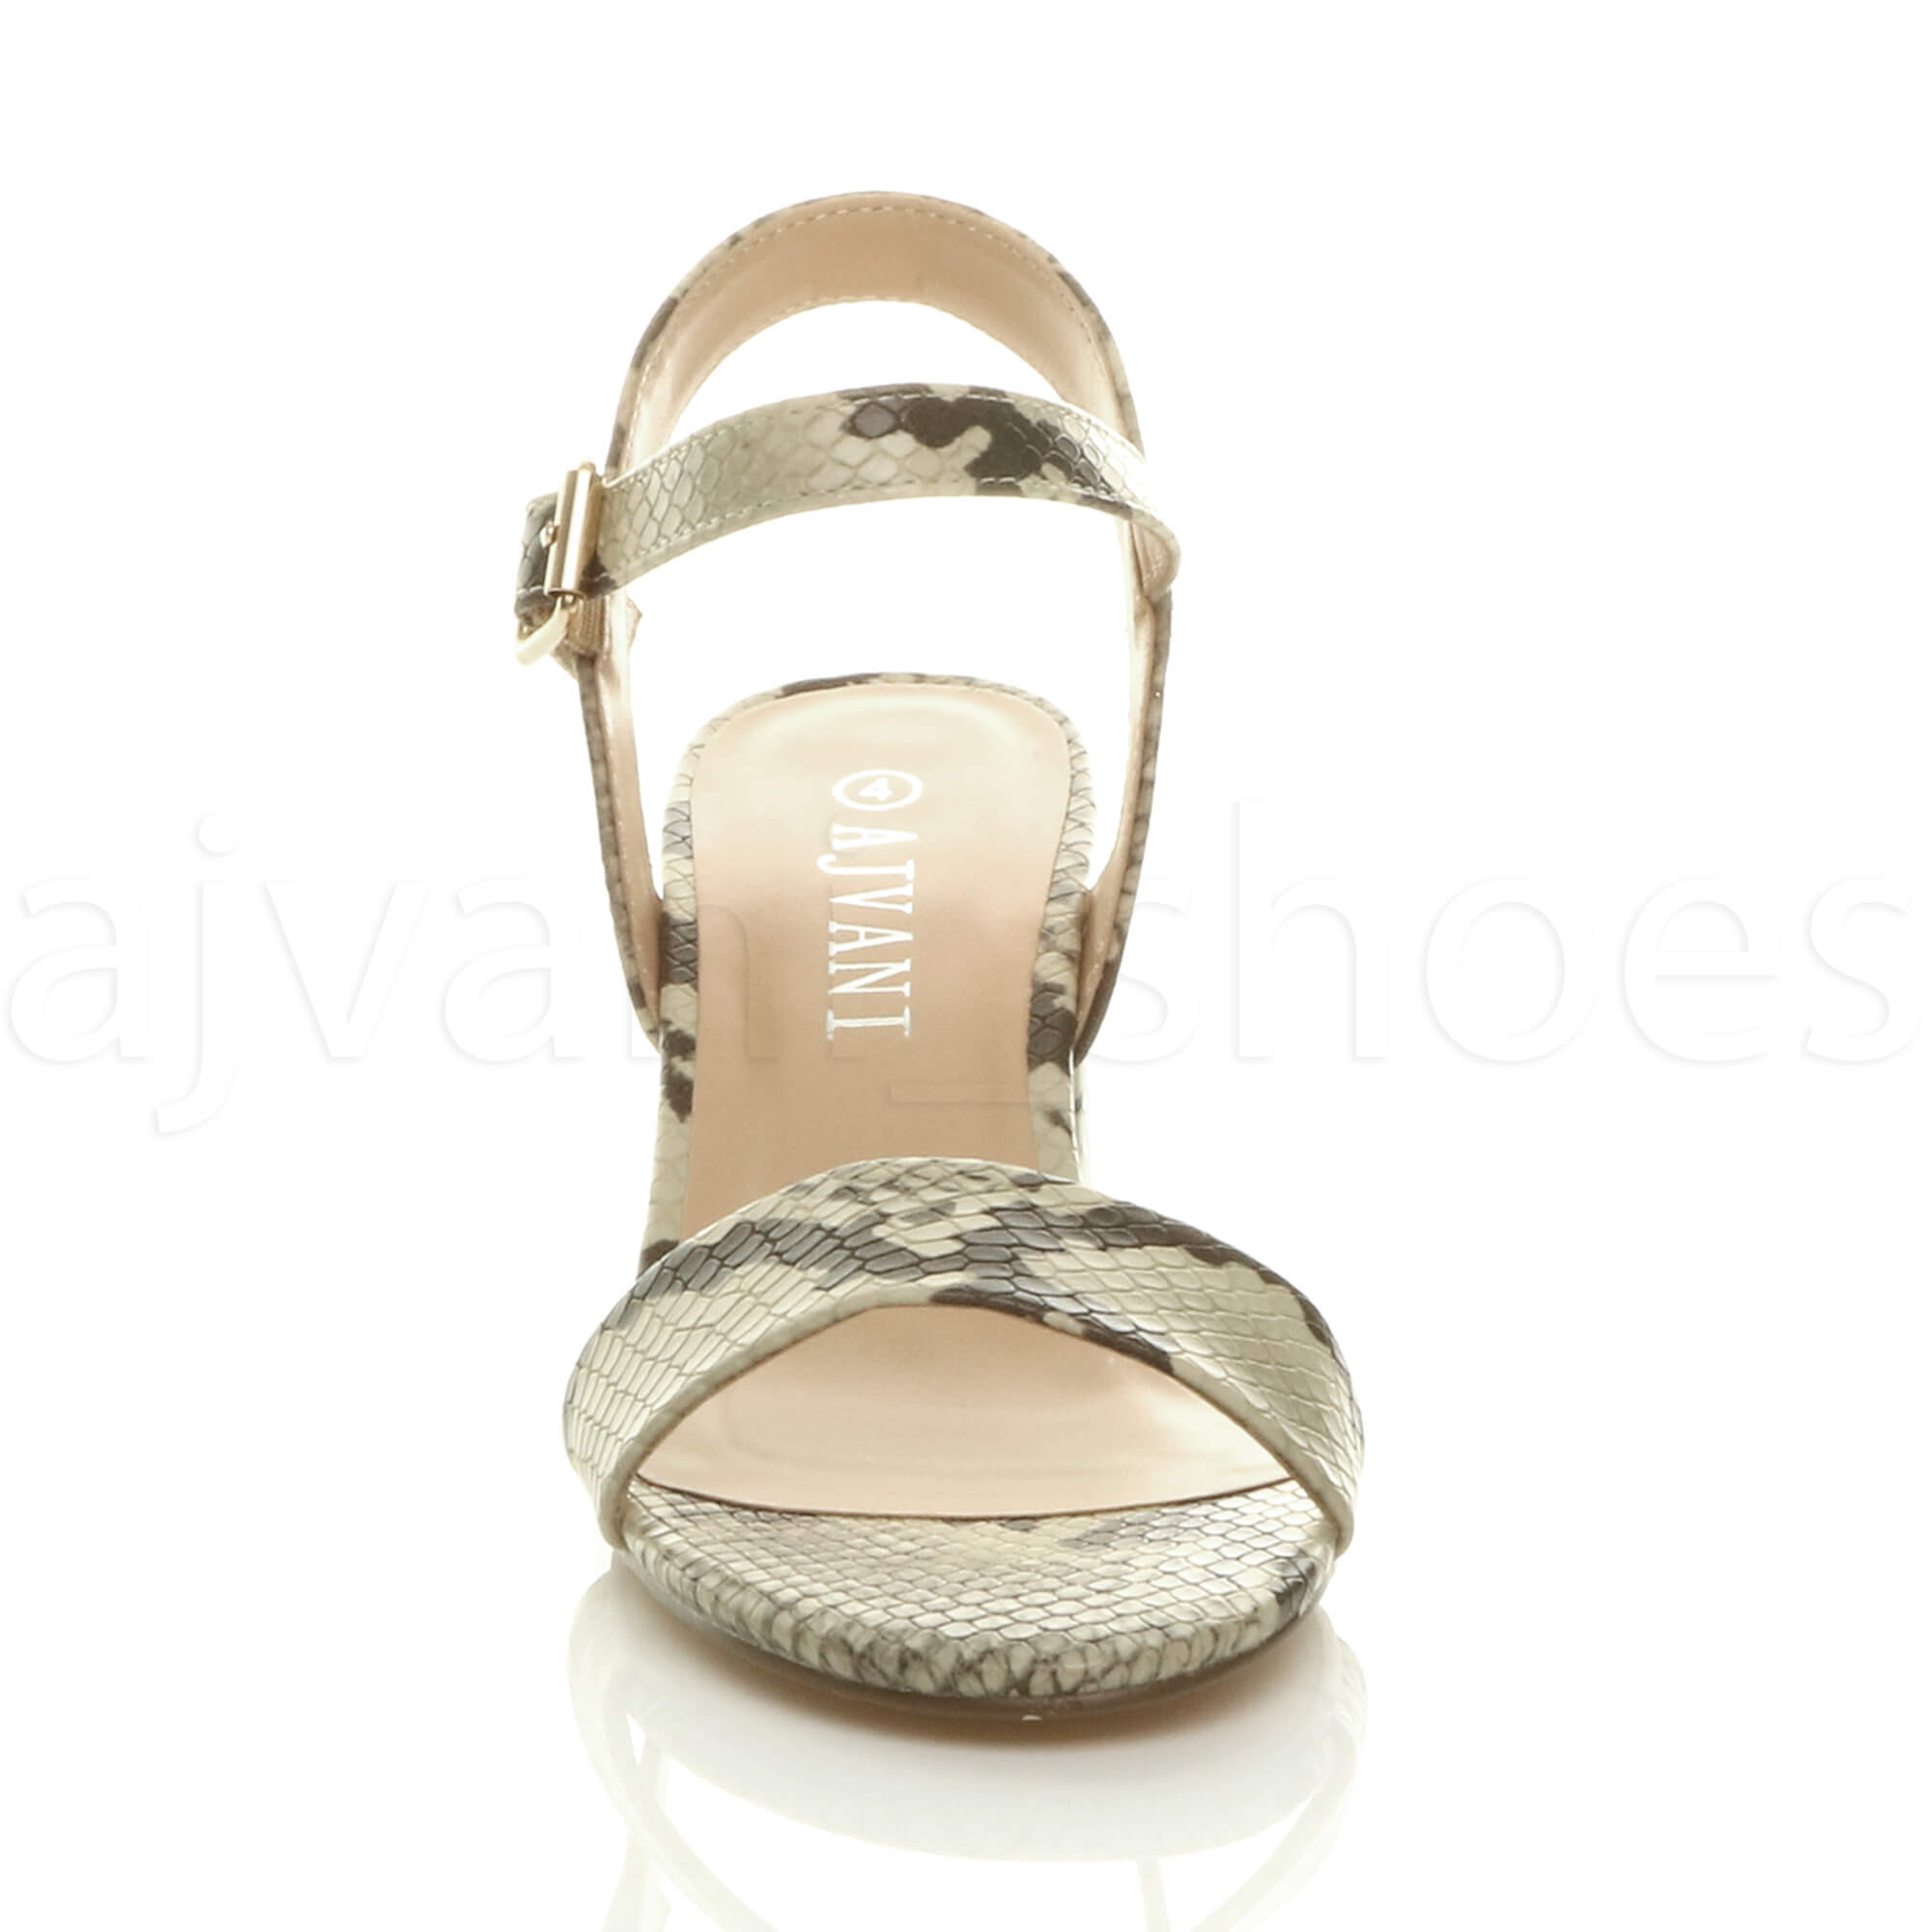 WOMENS-LADIES-MID-LOW-BLOCK-HEEL-PEEP-TOE-ANKLE-STRAP-STRAPPY-PARTY-SANDALS-SIZE thumbnail 7